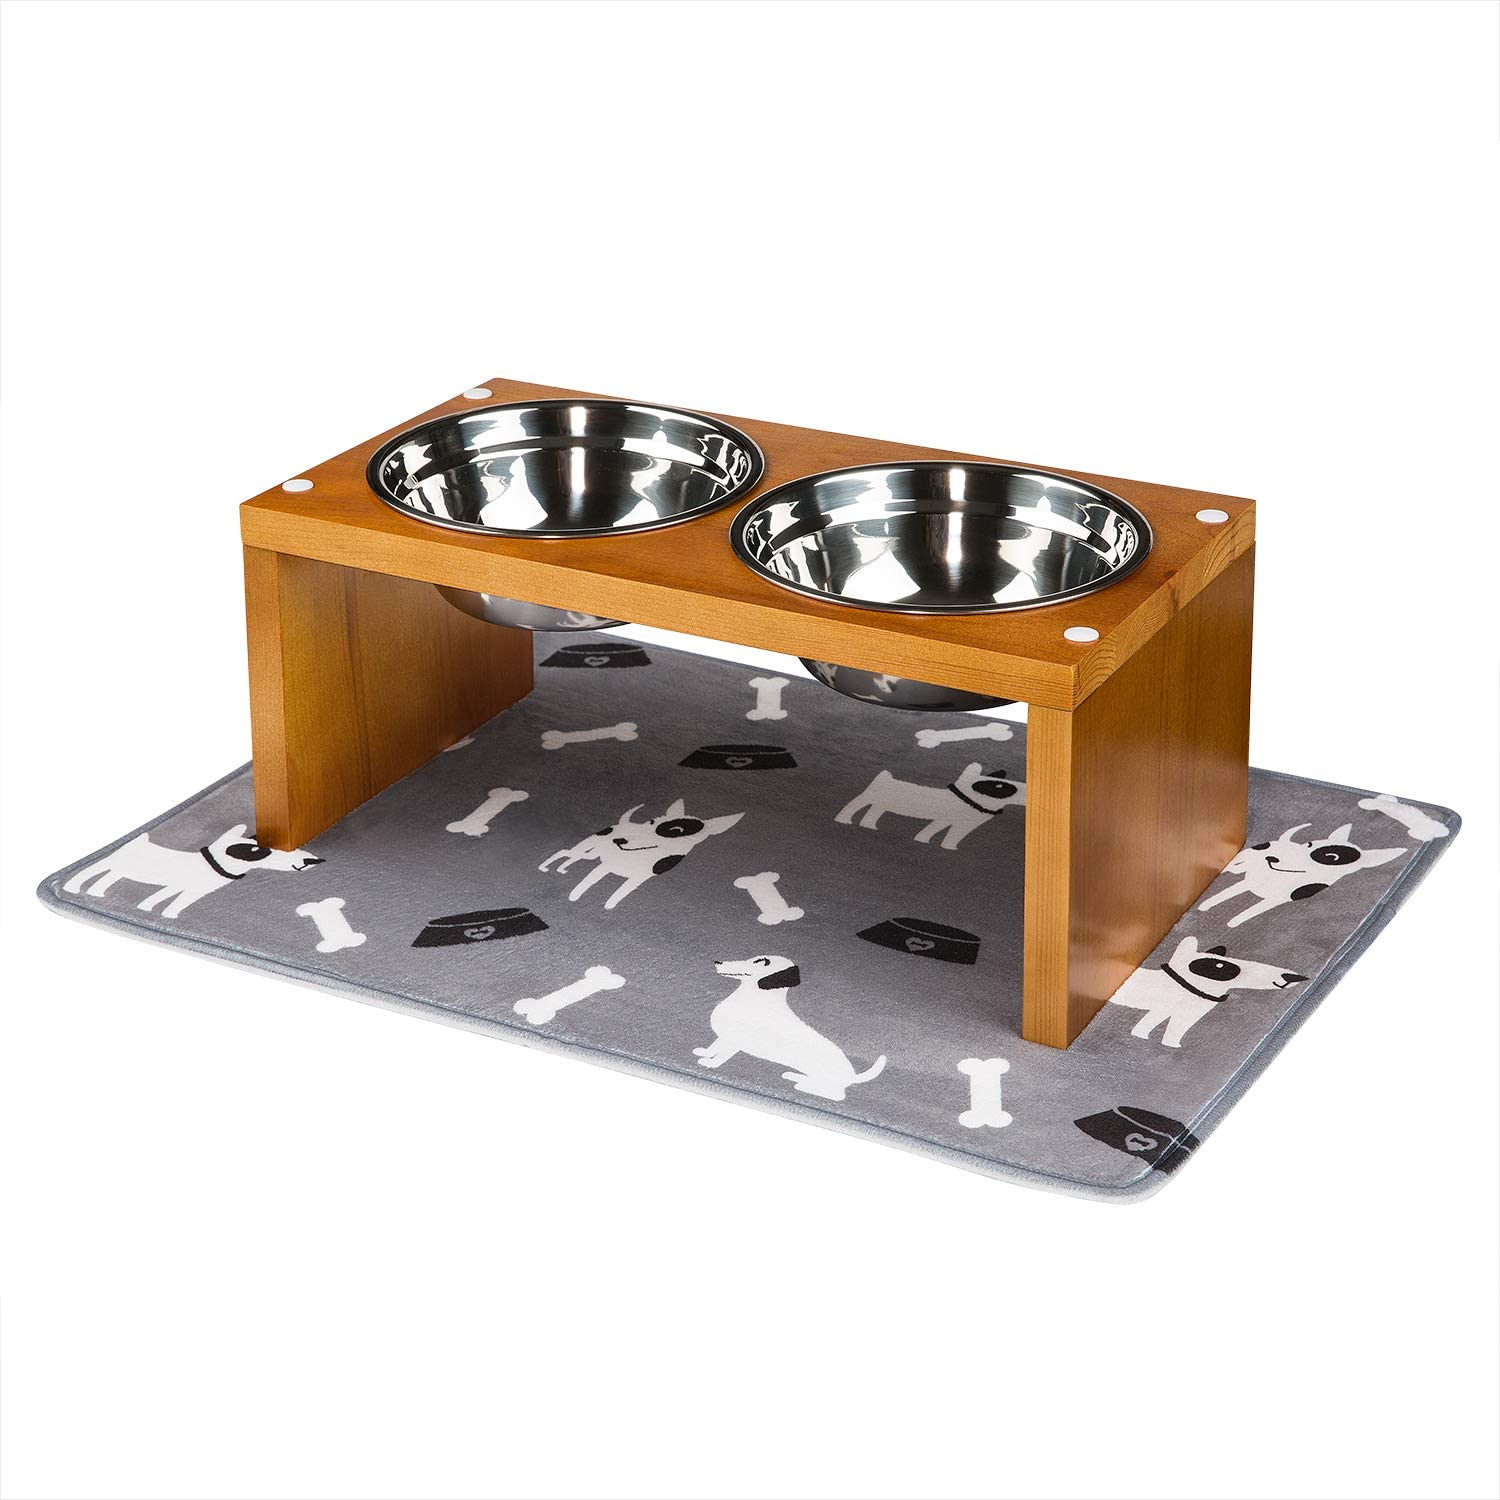 Kitchen Dining Yangbaga Elevated Dog Bowls Raised Dog Bowls With Stainless Steel Dog Bowls Came With Anti Slip Feet For The Stand And Noise Preventing Bulges For Bowls 17 6 9 2 7 2